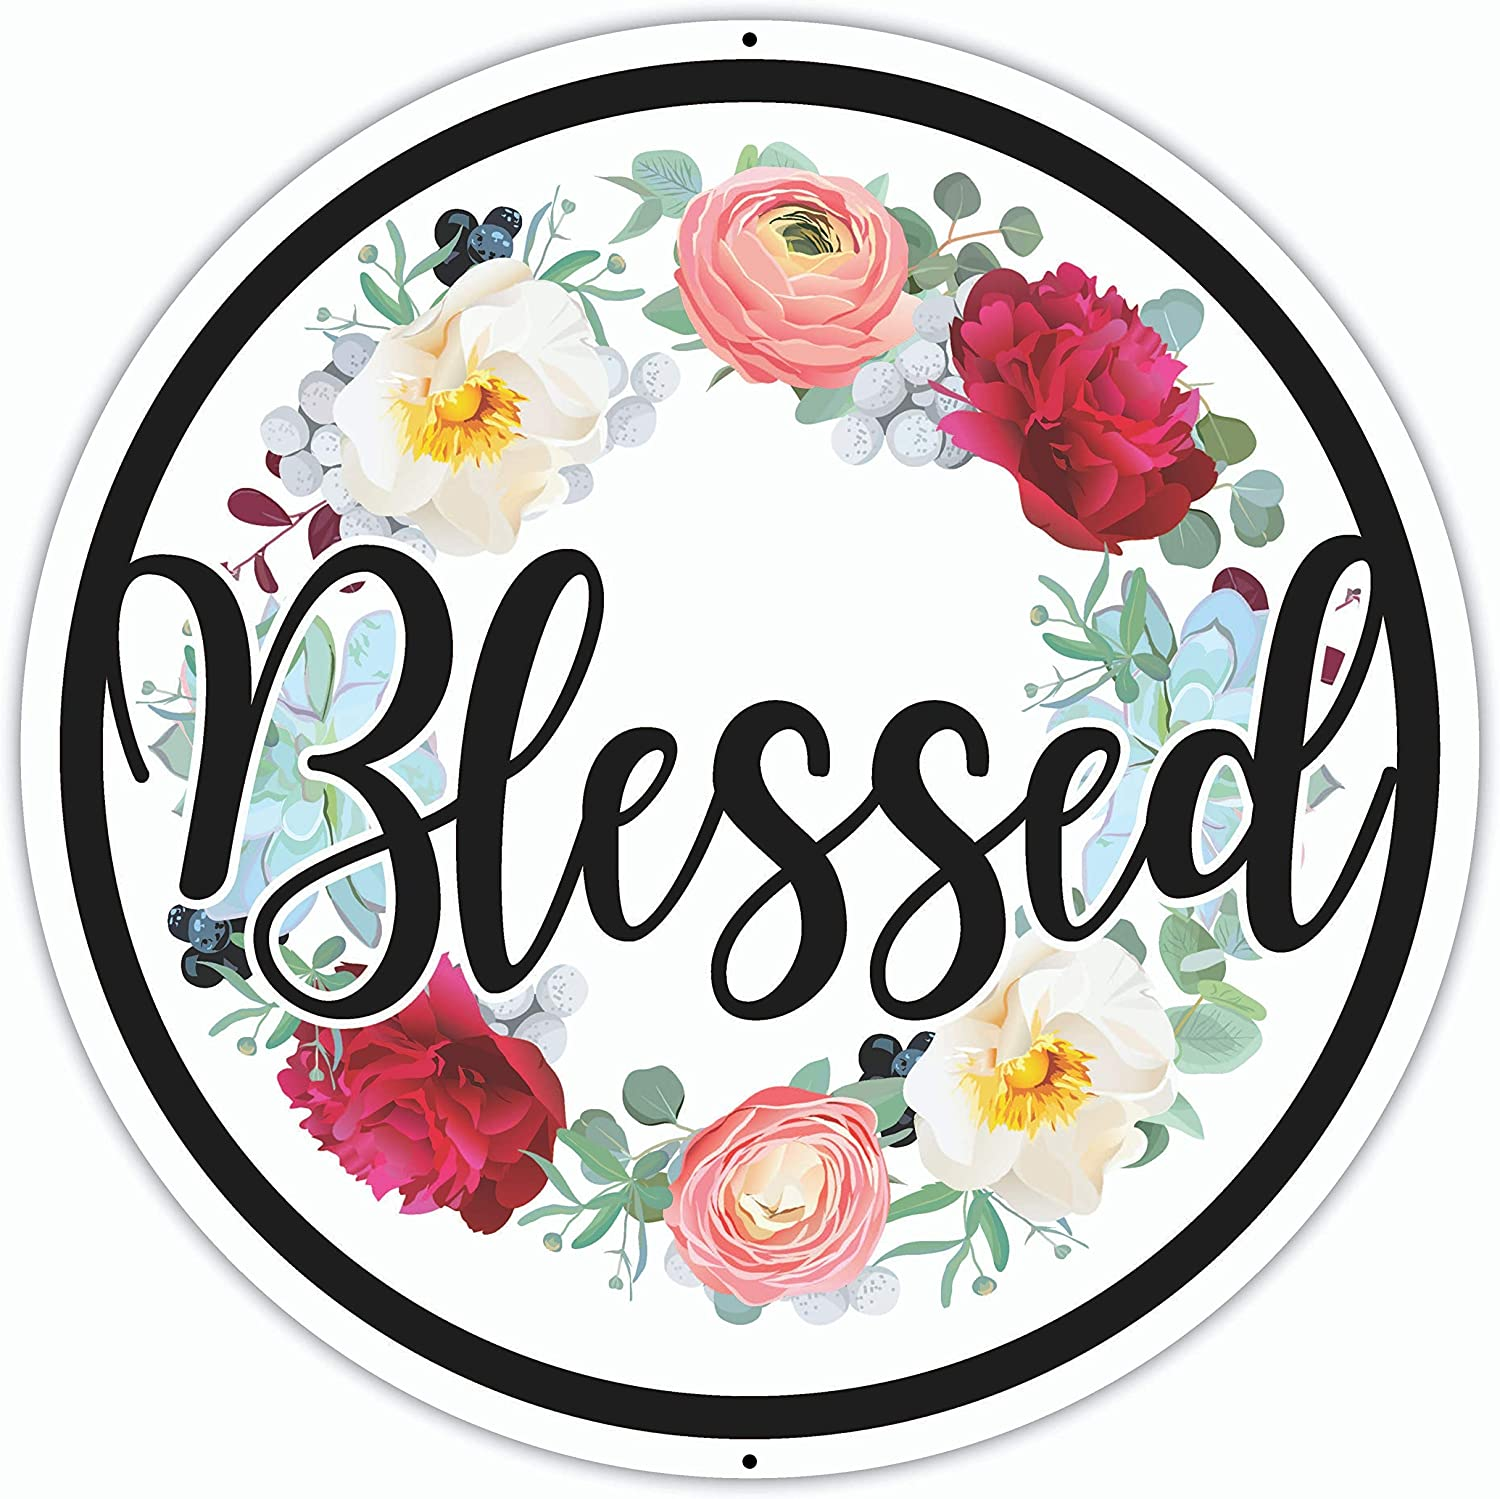 Blessed Sign - 12 x 12 Inches - Aluminum - Blessed Wall Decor - Blessed Signs for Home Decor Wall - Large Metal Blessed Family Wreath Art